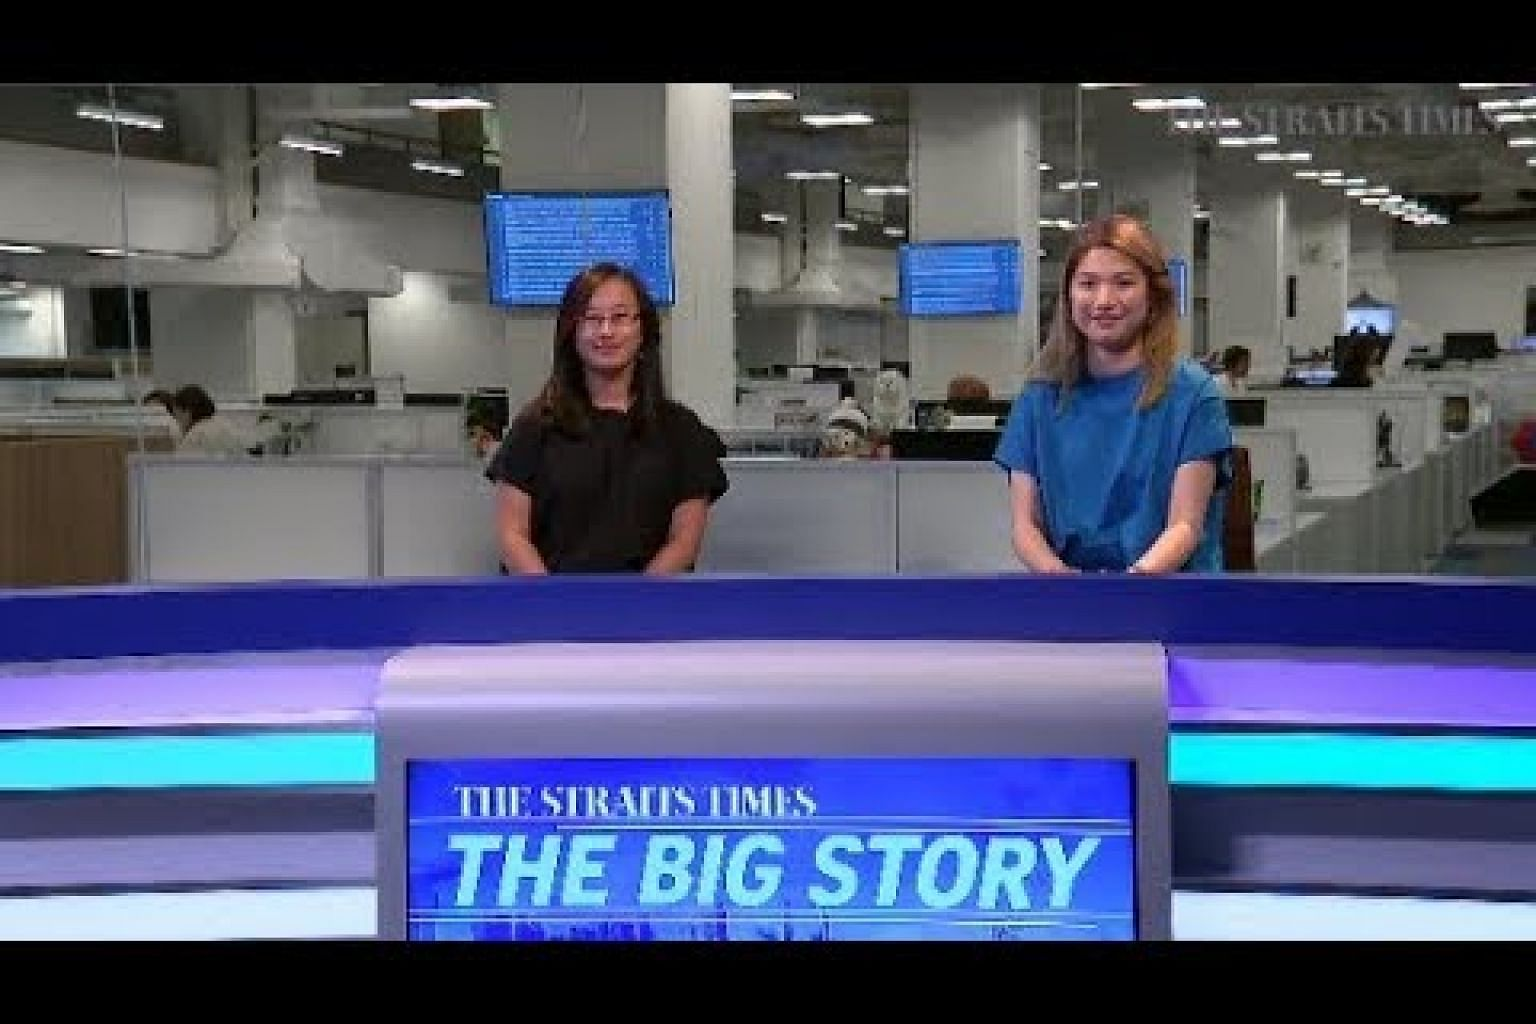 The Big Story: Concern over safety after hockey player's stroke | Making the most of durian season